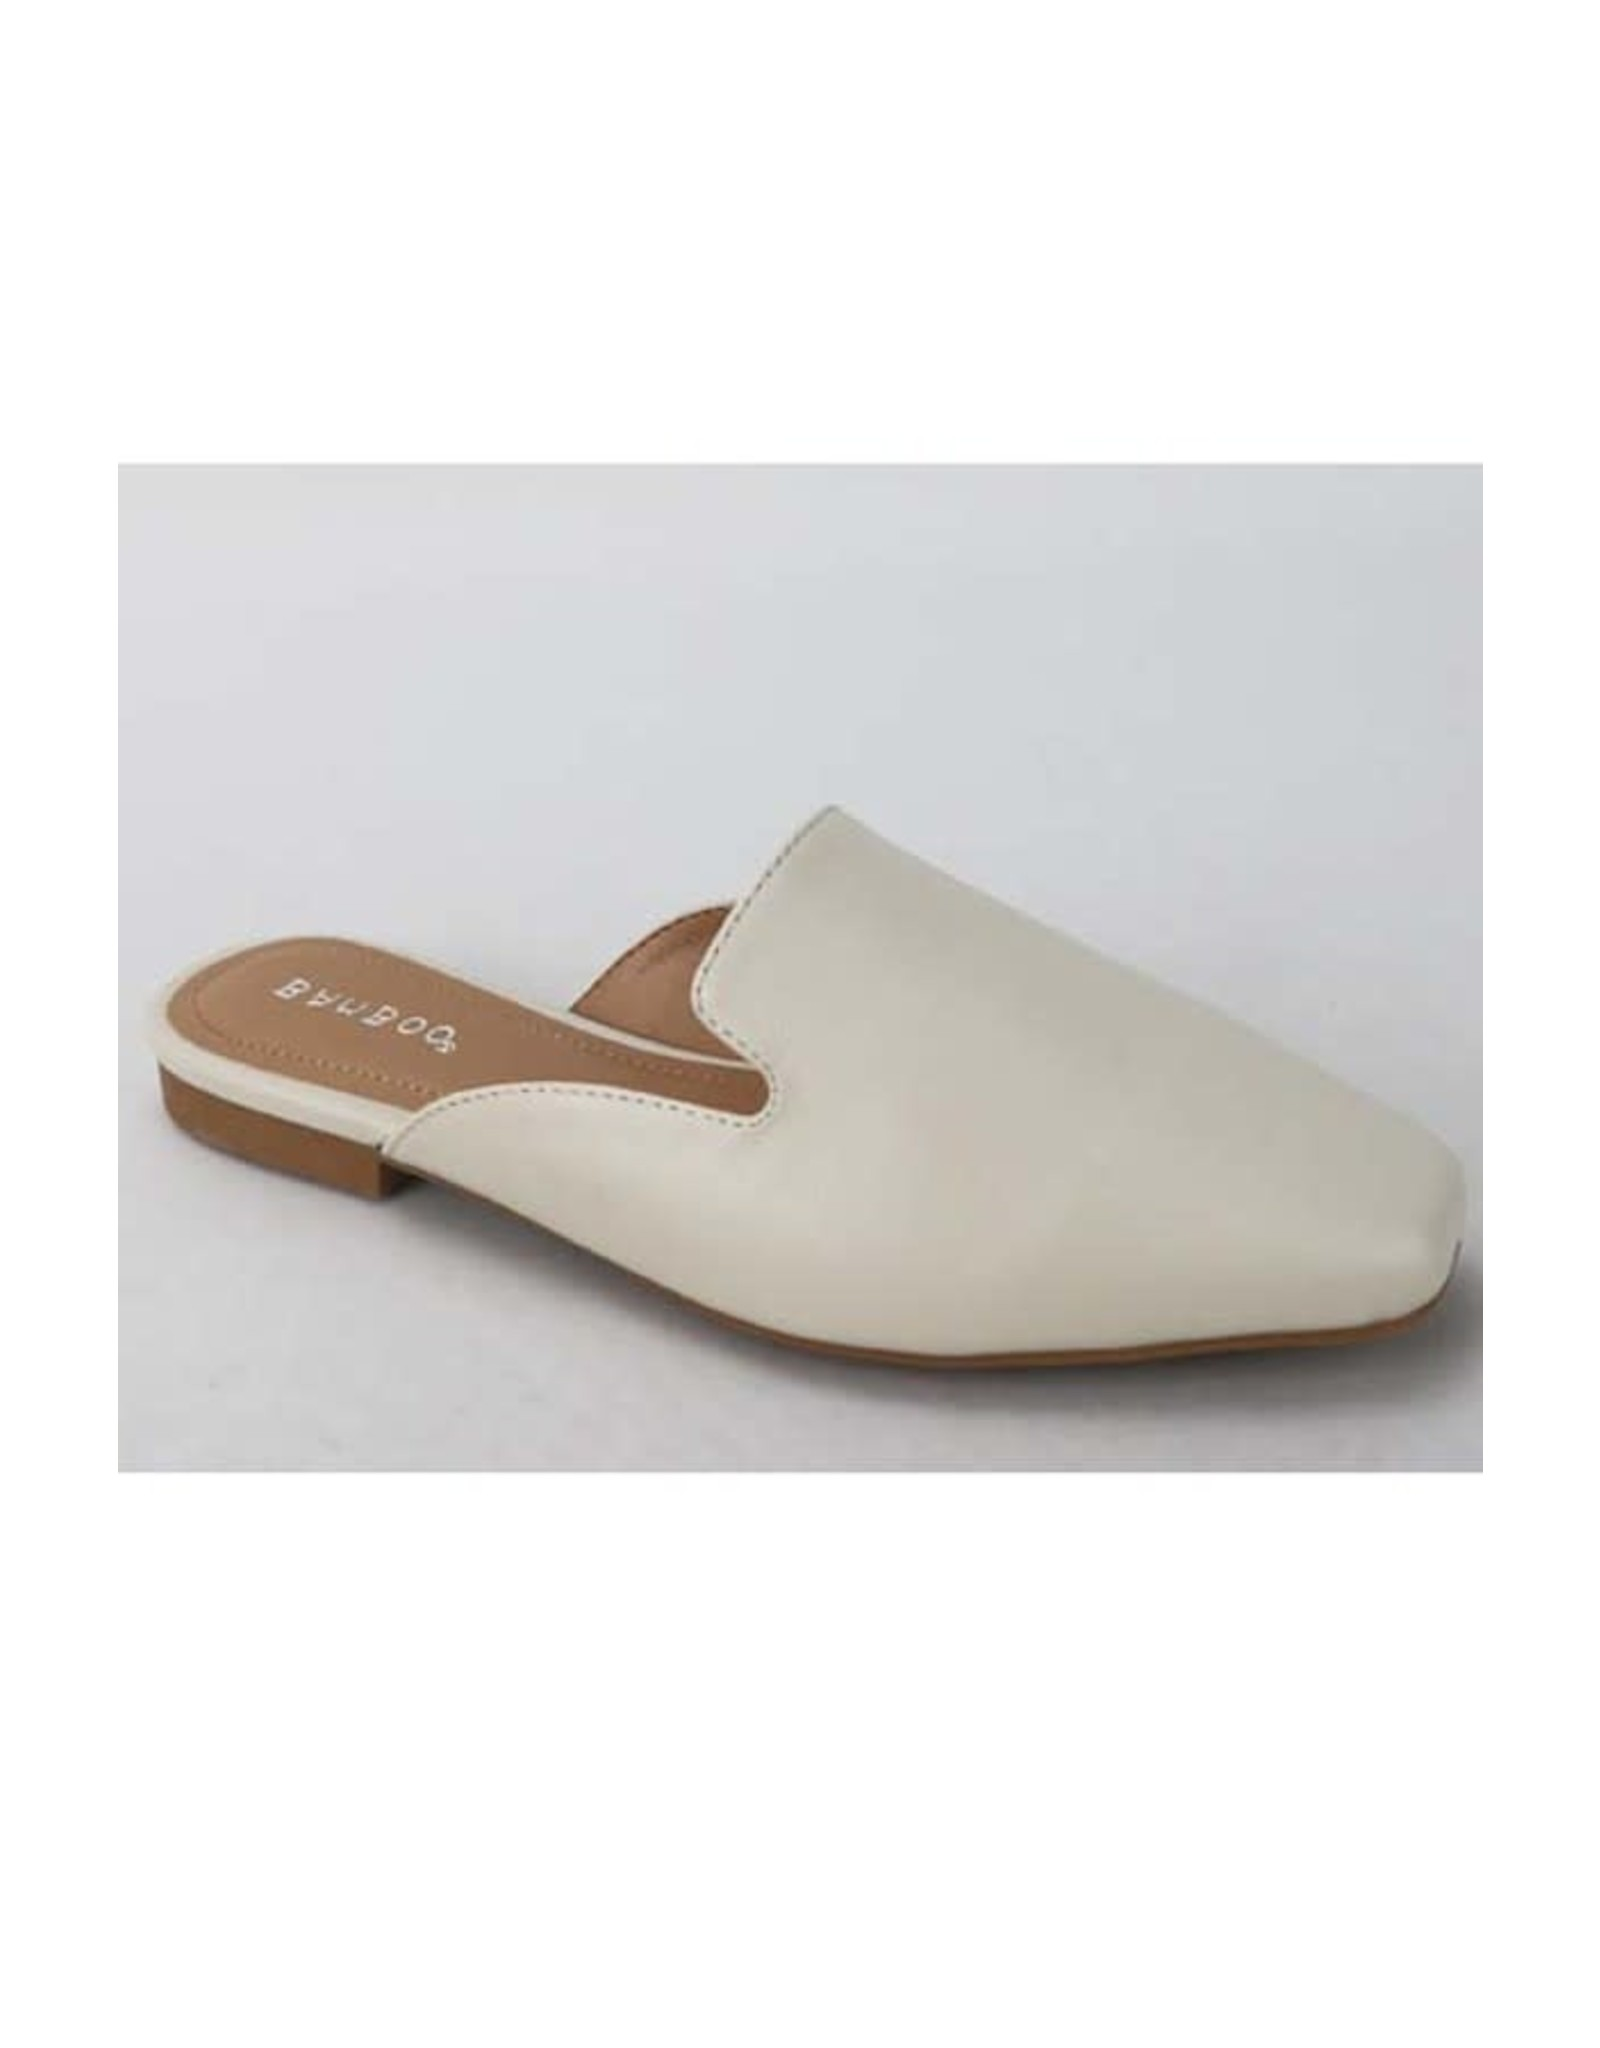 Sweep - Faux leather flat mules (ivory)